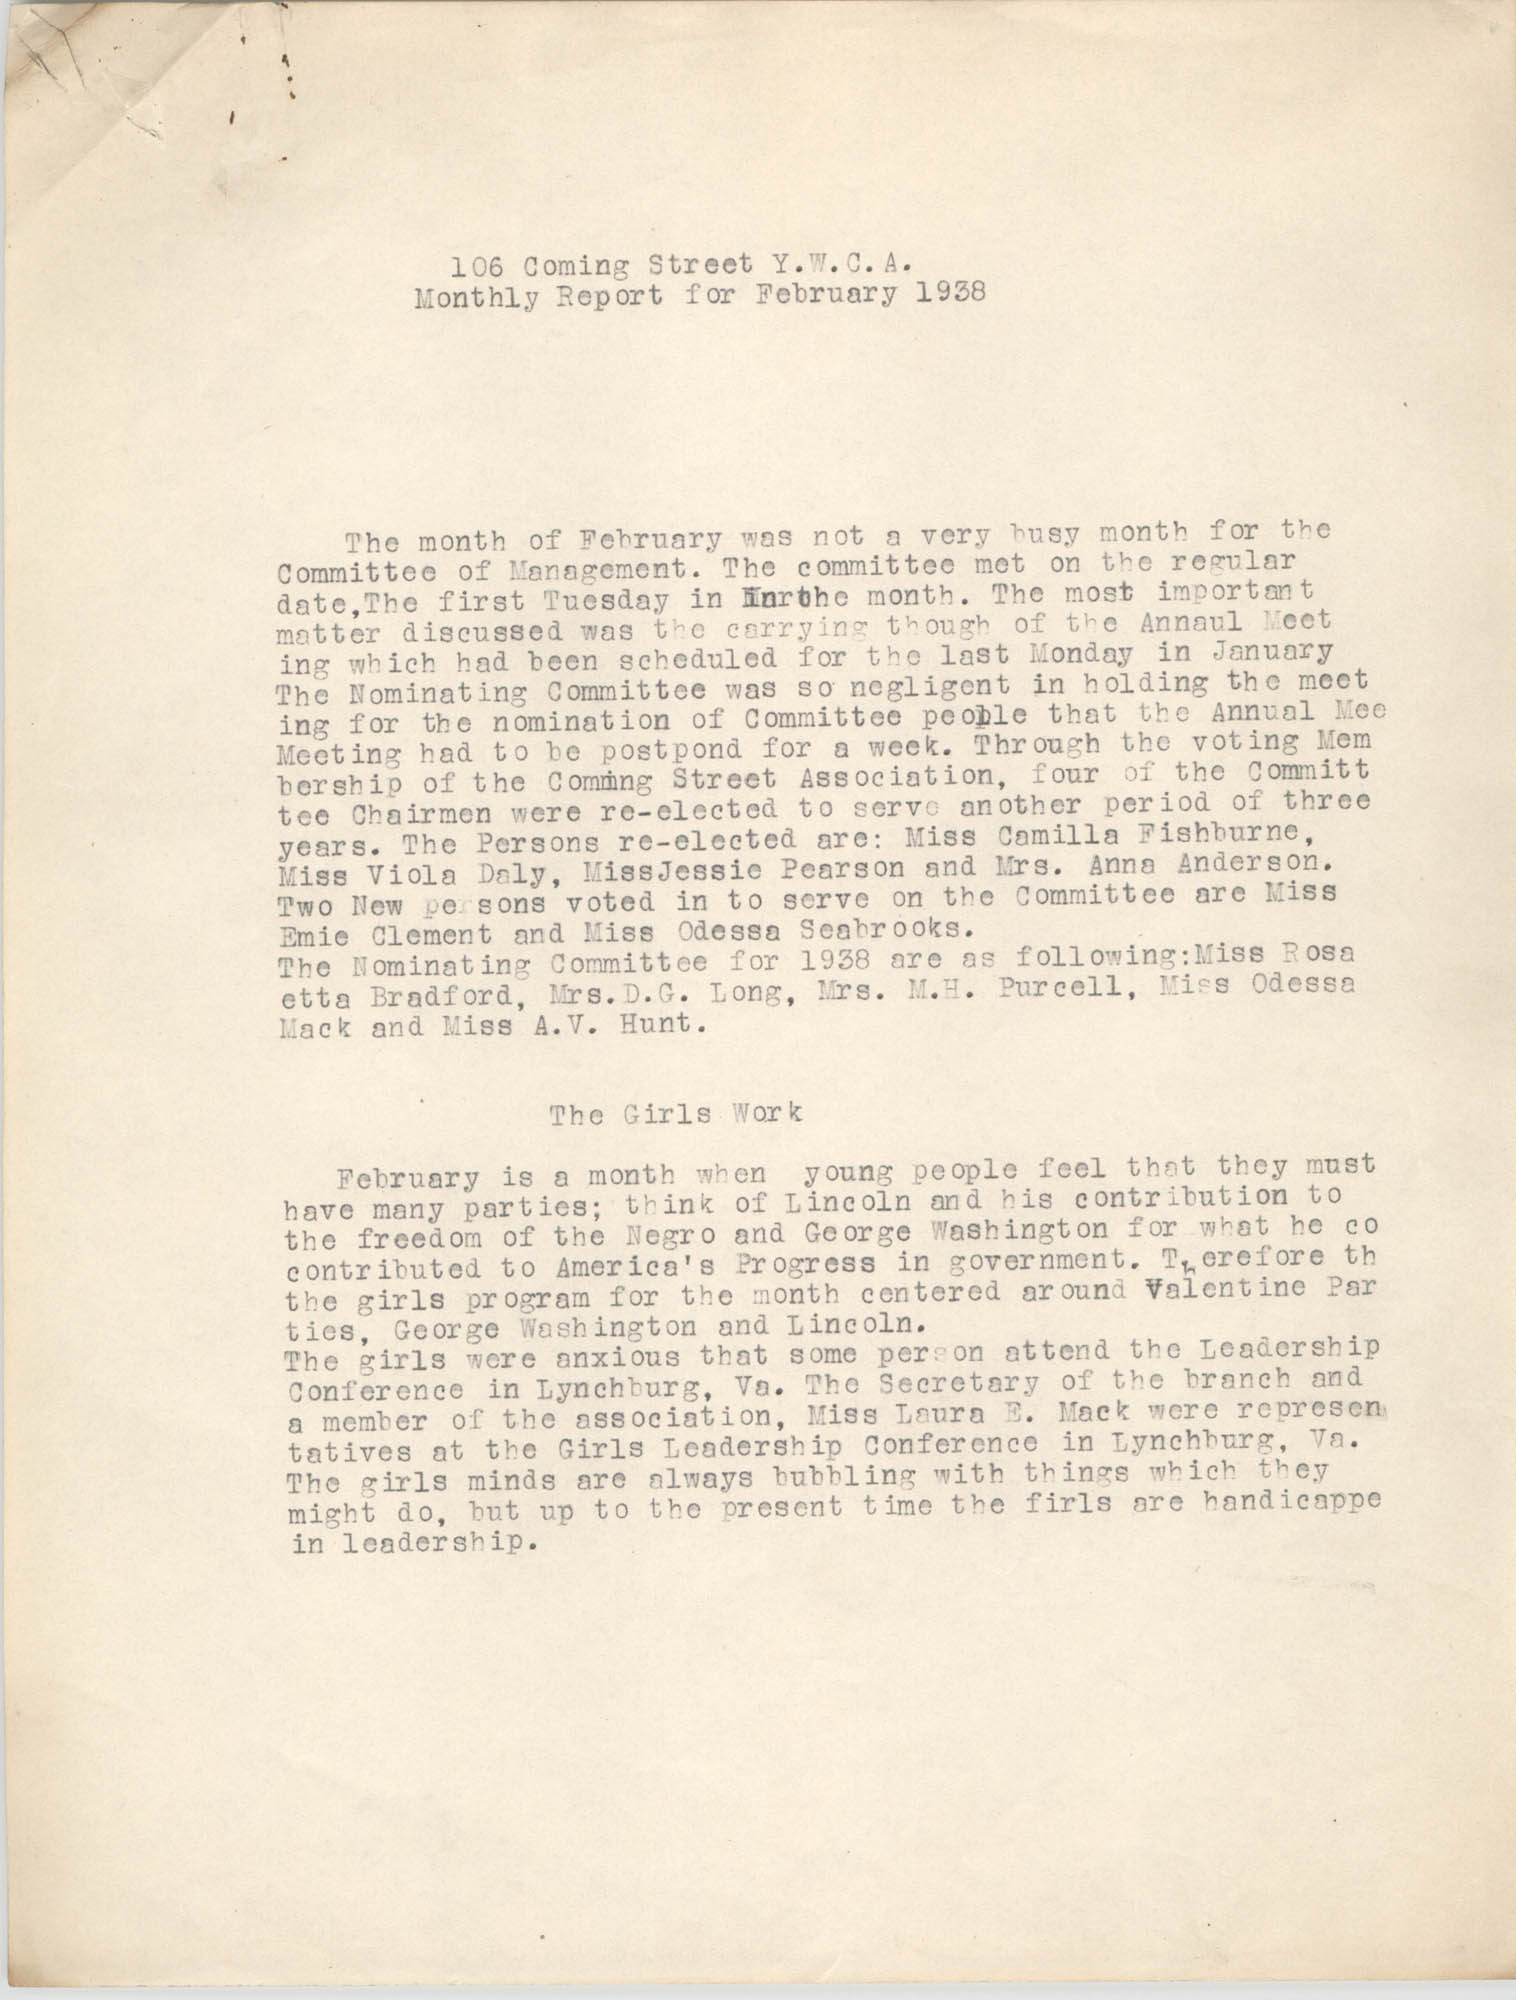 Monthly Report for the Coming Street Y.W.C.A., February 1938